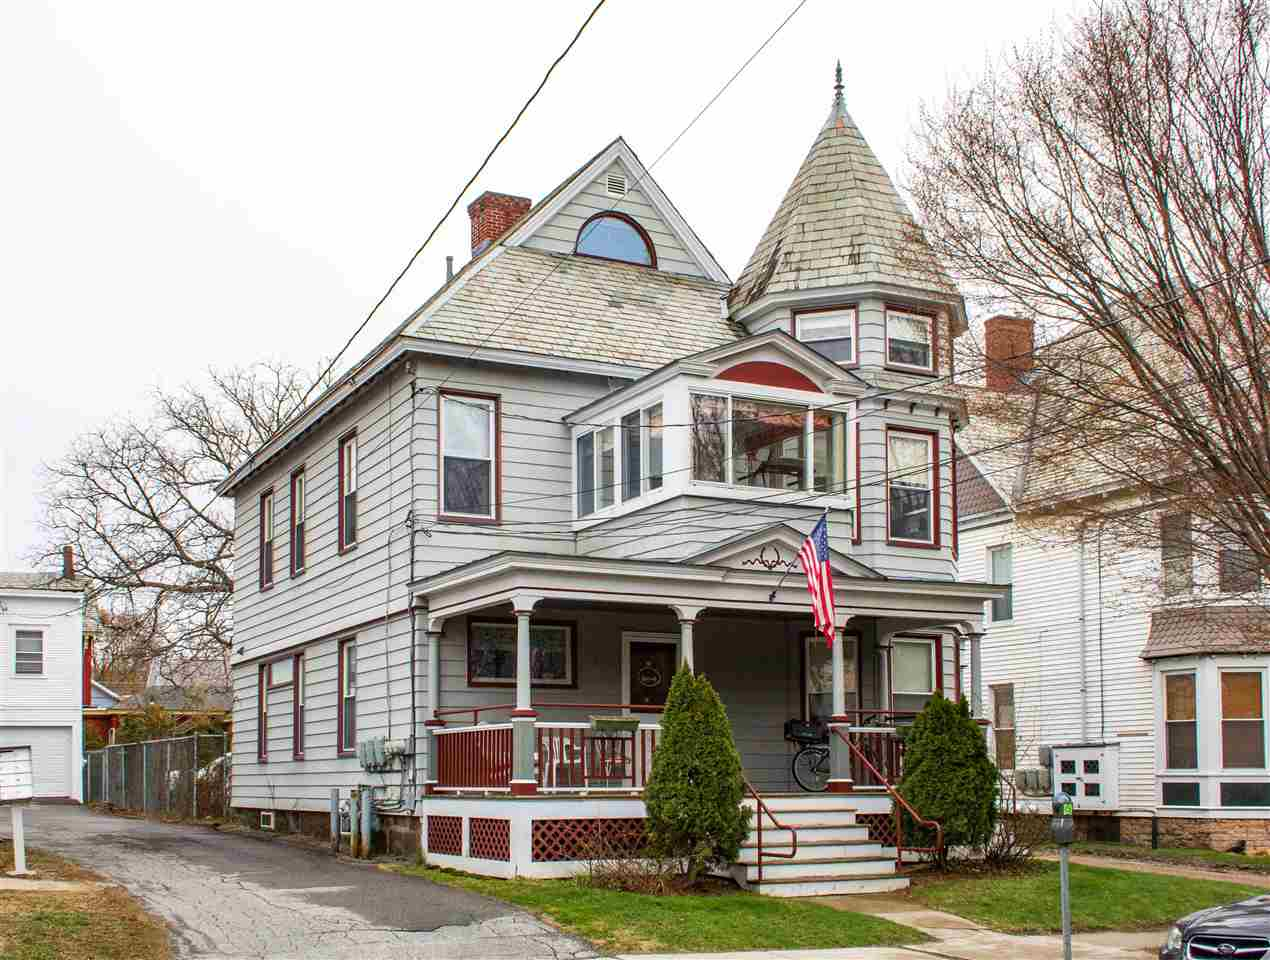 Beautiful Victorian Duplex in a prime location! Alluring original work throughout the property and well-maintained by the current owner. Investors welcome! This home is just steps away from the top of Church street and features off-street parking for residents. Enjoy a cup of coffee on the enclosed front porch, or enjoy your time on the 2nd story enclosed deck. The 2nd floor features a screened-in porch as well. This is an opportunity you don't want to miss!